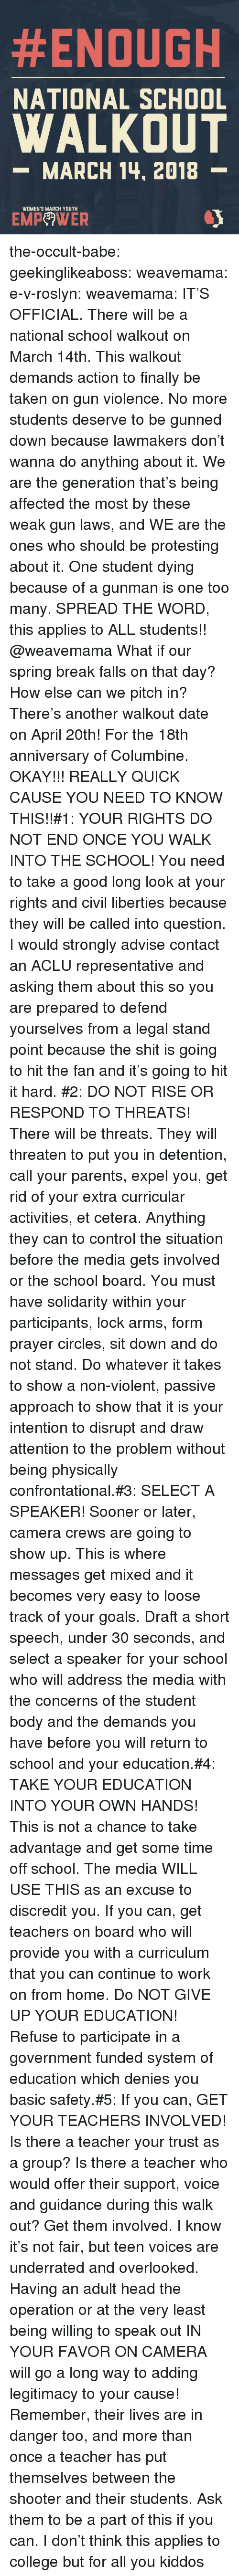 Aclu:  #ENOUGH  NATIONAL SCHOOL  WALKOUT  -MARCH 14, 2018  WOMEN'S MARCH YOUTH  EMPeWER the-occult-babe: geekinglikeaboss:  weavemama:  e-v-roslyn:   weavemama:  IT'S OFFICIAL. There will be a national school walkout on March 14th. This walkout demands action to finally be taken on gun violence. No more students deserve to be gunned down because lawmakers don't wanna do anything about it. We are the generation that's being affected the most by these weak gun laws, and WE are the ones who should be protesting about it. One student dying because of a gunman is one too many. SPREAD THE WORD, this applies to ALL students!!  @weavemama What if our spring break falls on that day? How else can we pitch in?   There's another walkout date on April 20th! For  the 18th anniversary of Columbine.   OKAY!!! REALLY QUICK CAUSE YOU NEED TO KNOW THIS!!#1: YOUR RIGHTS DO NOT END ONCE YOU WALK INTO THE SCHOOL! You need to take a good long look at your rights and civil liberties because they will be called into question. I would strongly advise contact an ACLU representative and asking them about this so you are prepared to defend yourselves from a legal stand point because the shit is going to hit the fan and it's going to hit it hard. #2: DO NOT RISE OR RESPOND TO THREATS! There will be threats. They will threaten to put you in detention, call your parents, expel you, get rid of your extra curricular activities, et cetera. Anything they can to control the situation  before the media gets involved or the school board. You must have solidarity within your participants, lock arms, form prayer circles, sit down and do not stand. Do whatever it takes to show a non-violent, passive approach to show that it is your intention to disrupt and draw attention to the problem without being physically confrontational.#3: SELECT A SPEAKER! Sooner or later, camera crews are going to show up. This is where messages get mixed and it becomes very easy to loose track of your goals. Draft a short speech, under 30 seconds, and select a speaker for your school who will address the media with the concerns of the student body and the demands you have before you will return to school and your education.#4: TAKE YOUR EDUCATION INTO YOUR OWN HANDS! This is not a chance to take advantage and get some time off school. The media WILL USE THIS as an excuse to discredit you. If you can, get teachers on board who will provide you with a curriculum that you can continue to work on from home. Do NOT GIVE UP YOUR EDUCATION! Refuse to participate in a government funded system of education which denies you basic safety.#5: If you can, GET YOUR TEACHERS INVOLVED! Is there a teacher your trust as a group? Is there a teacher who would offer their support, voice and guidance during this walk out? Get them involved. I know it's not fair, but teen voices are underrated and overlooked. Having an adult head the operation or at the very least being willing to speak out IN YOUR FAVOR ON CAMERA will go a long way to adding legitimacy to your cause! Remember, their lives are in danger too, and more than once a teacher has put themselves between the shooter and their students. Ask them to be a part of this if you can.    I don't think this applies to college but for all you kiddos